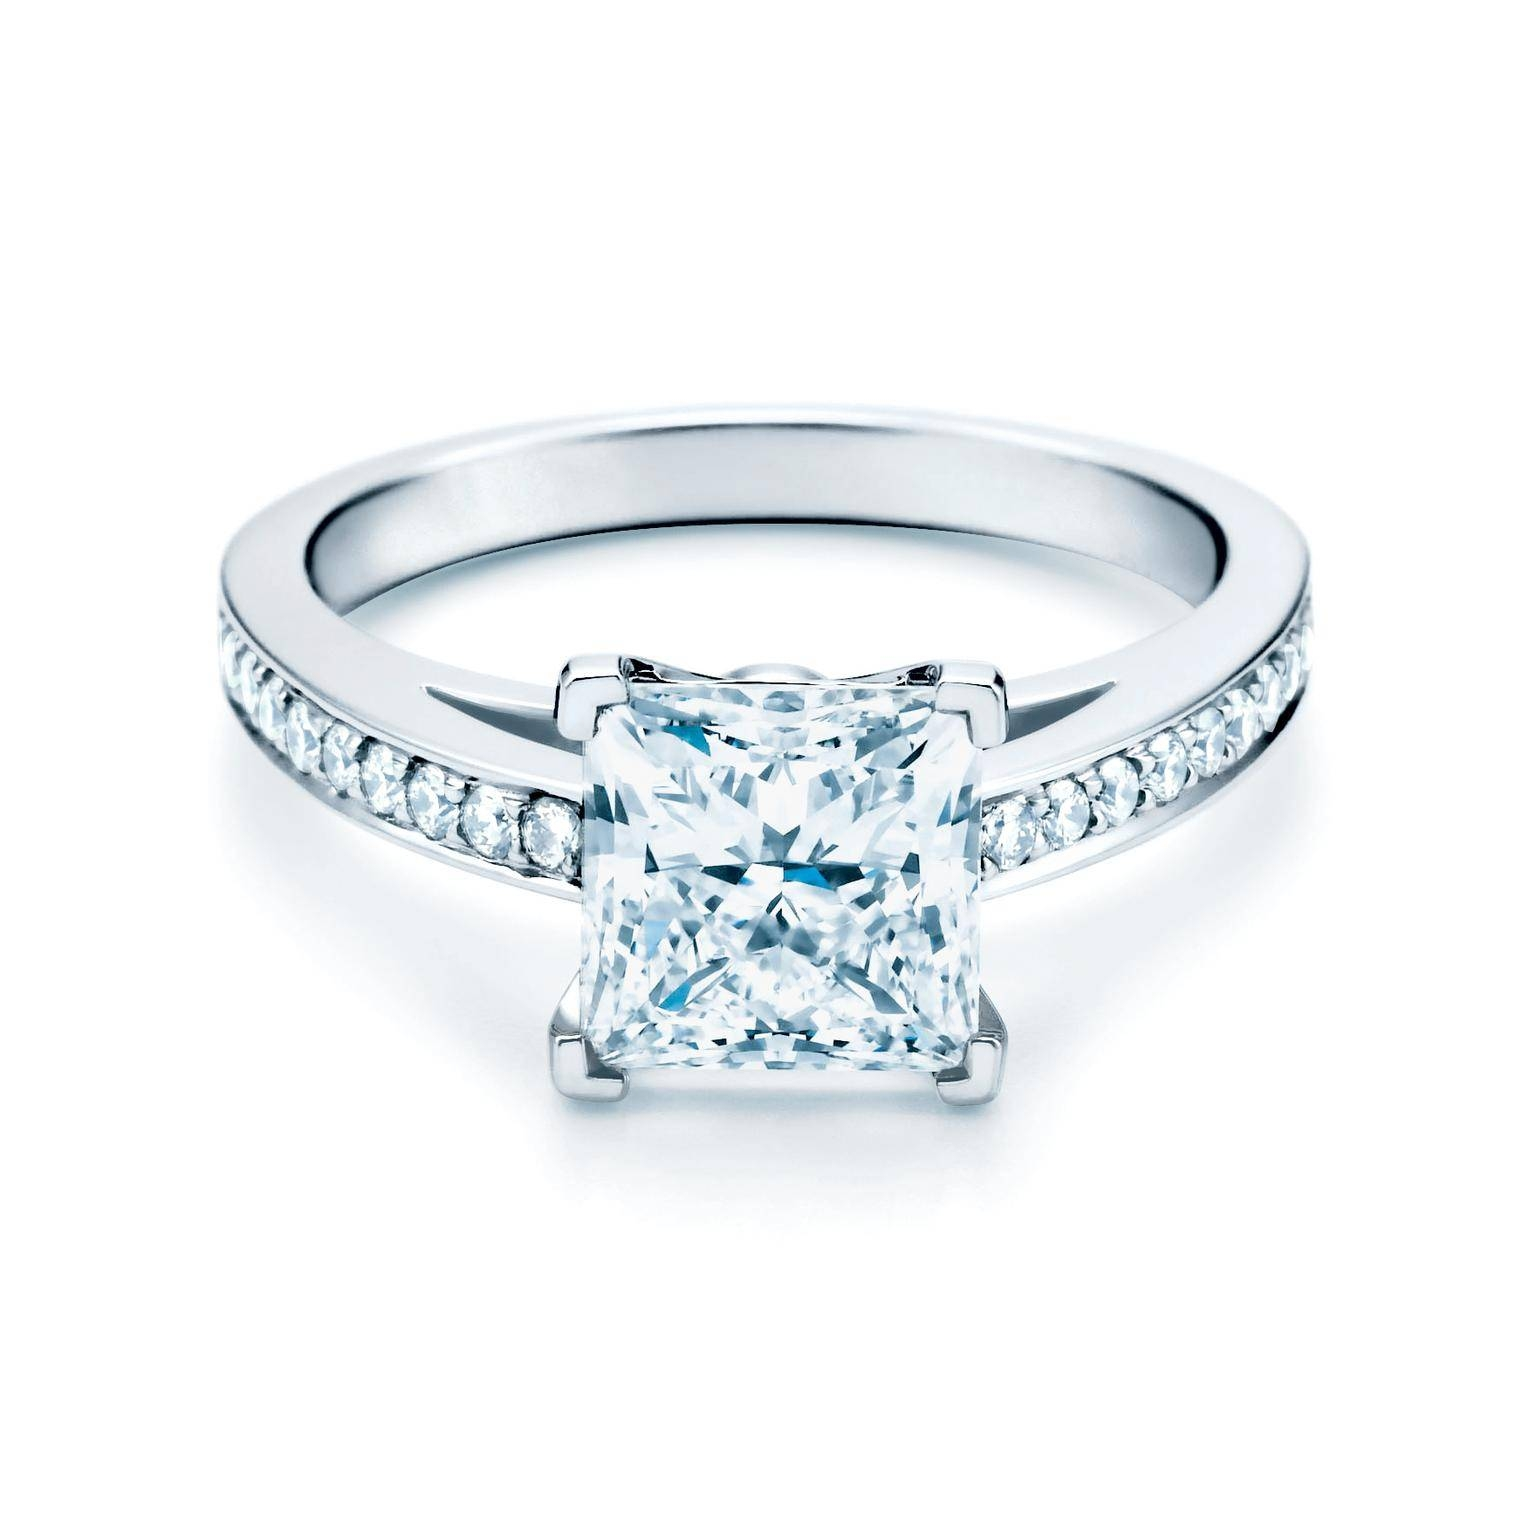 Grace Princess Cut Diamond Engagement Ring | Tiffany & Co (View 9 of 15)